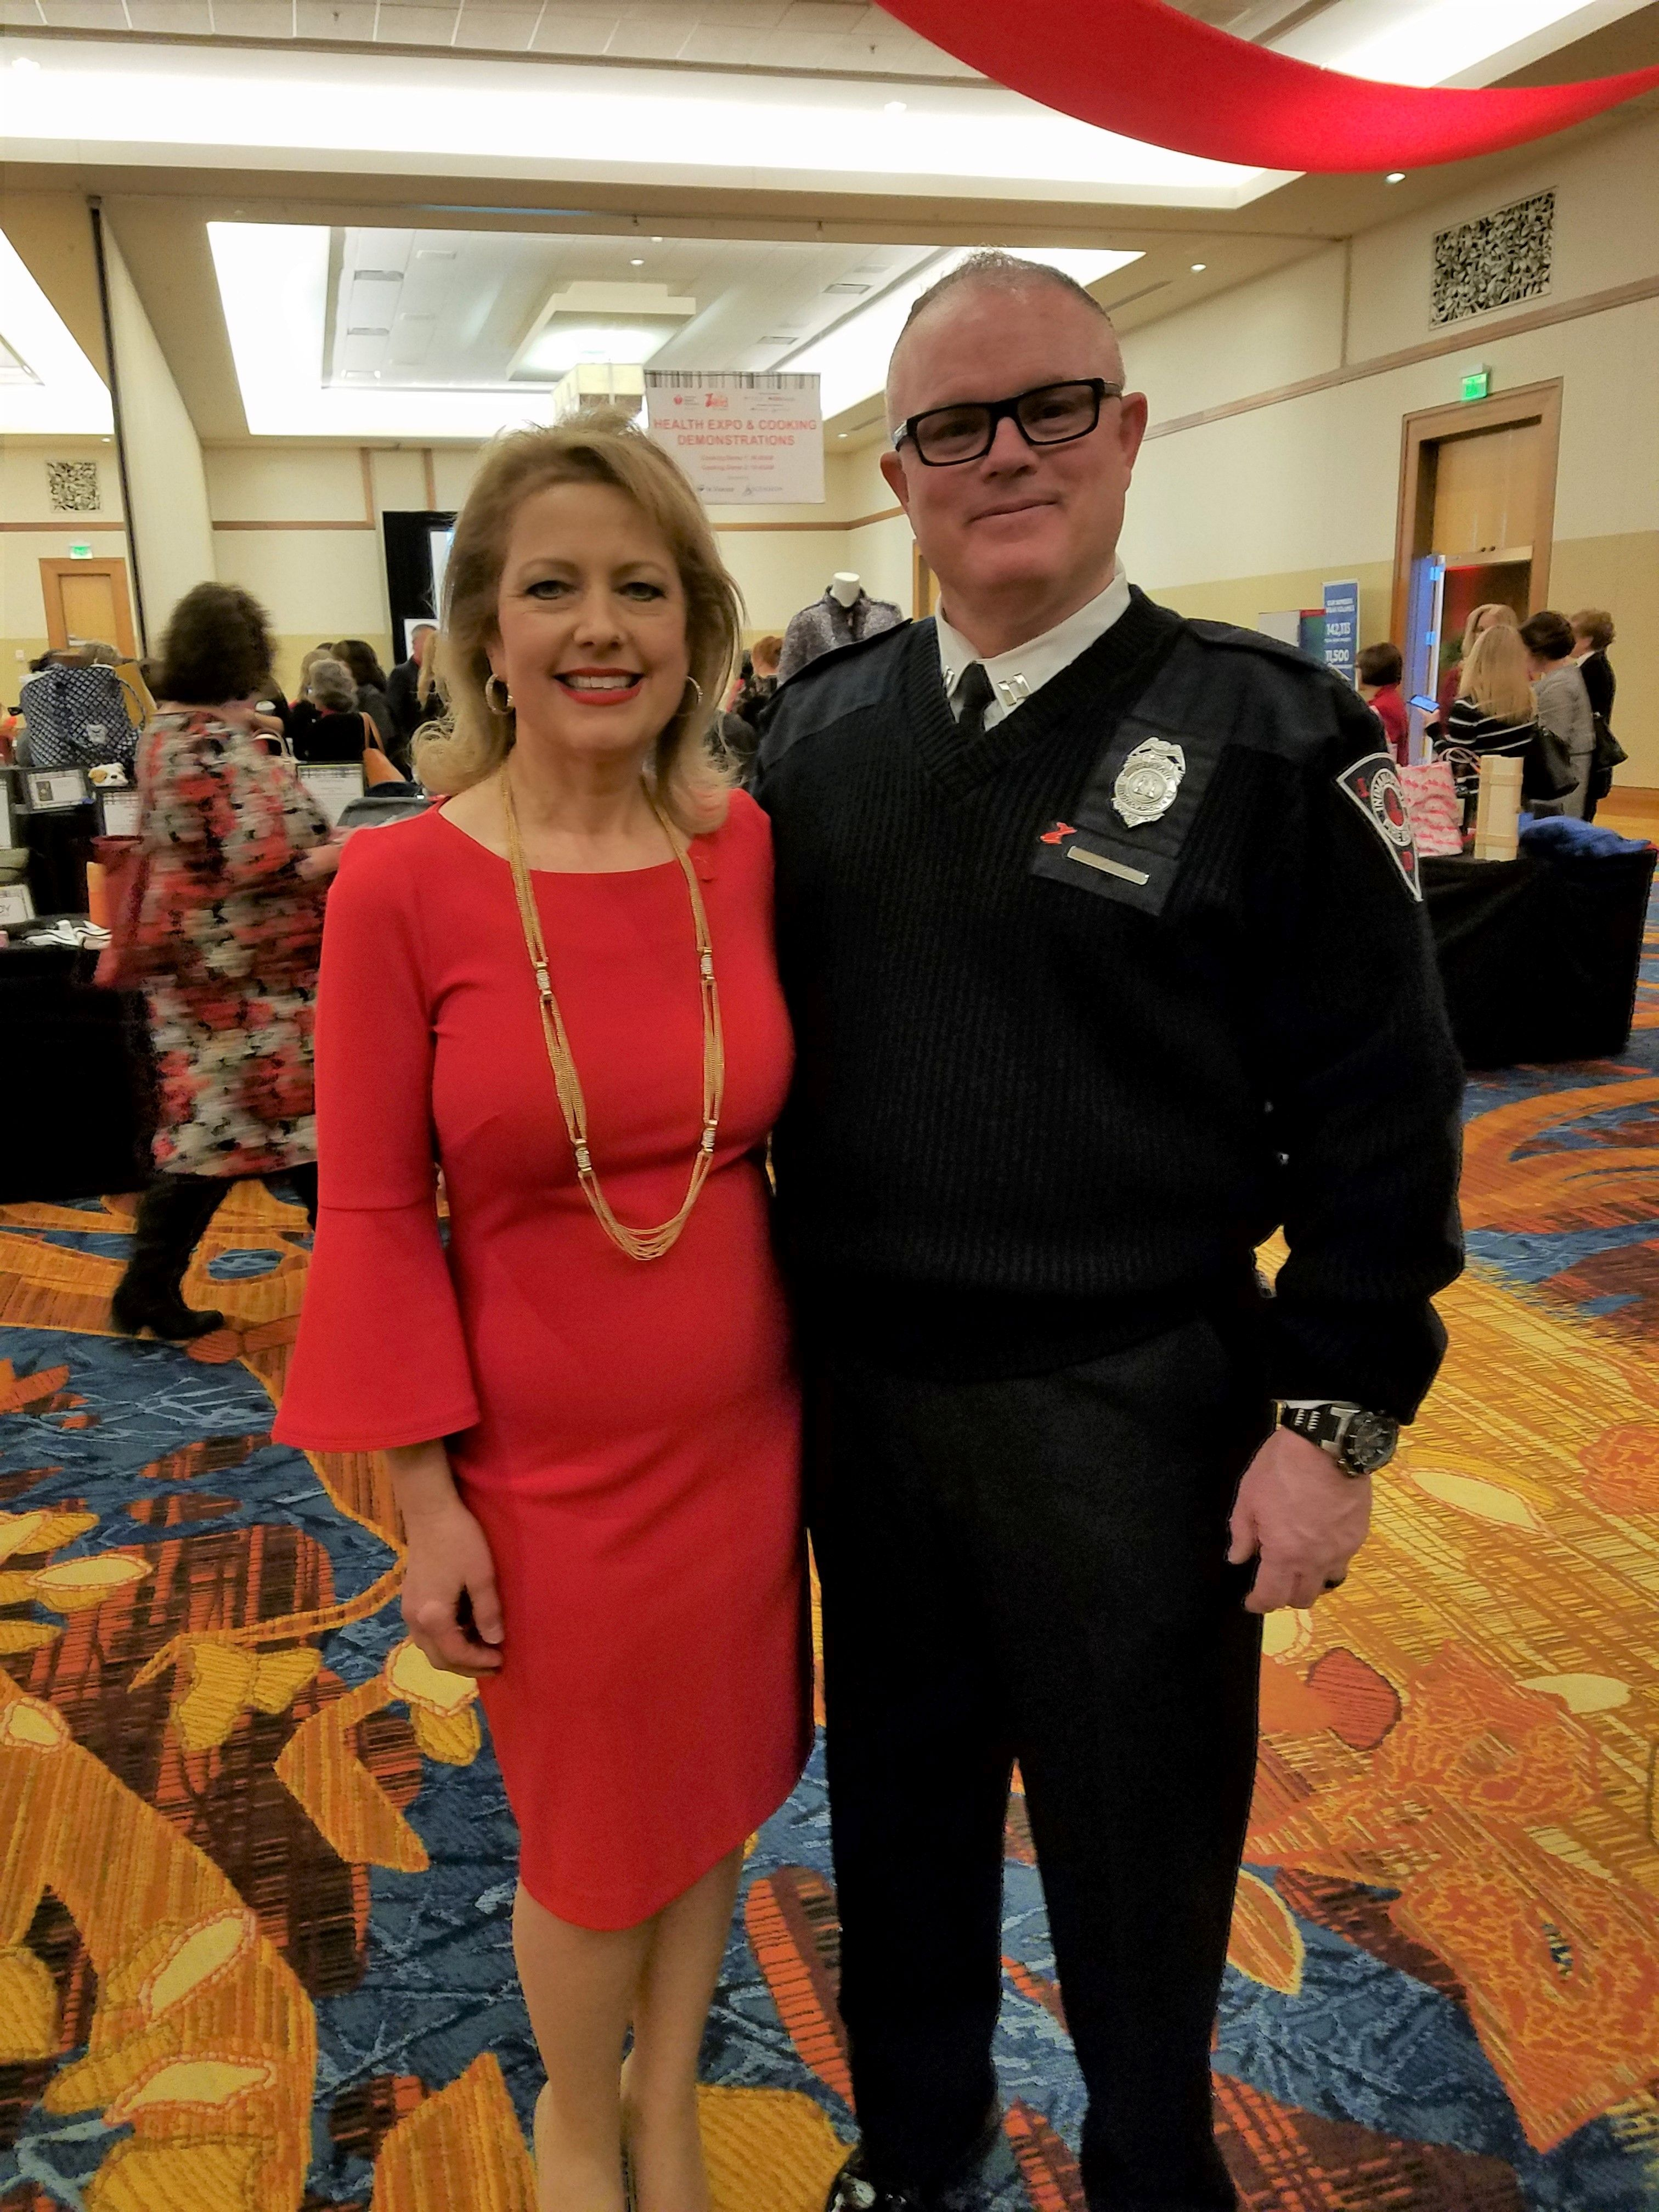 Wendy King, OGR's new executive director/CEO, stands next to her husband Jim at an American Heart Association